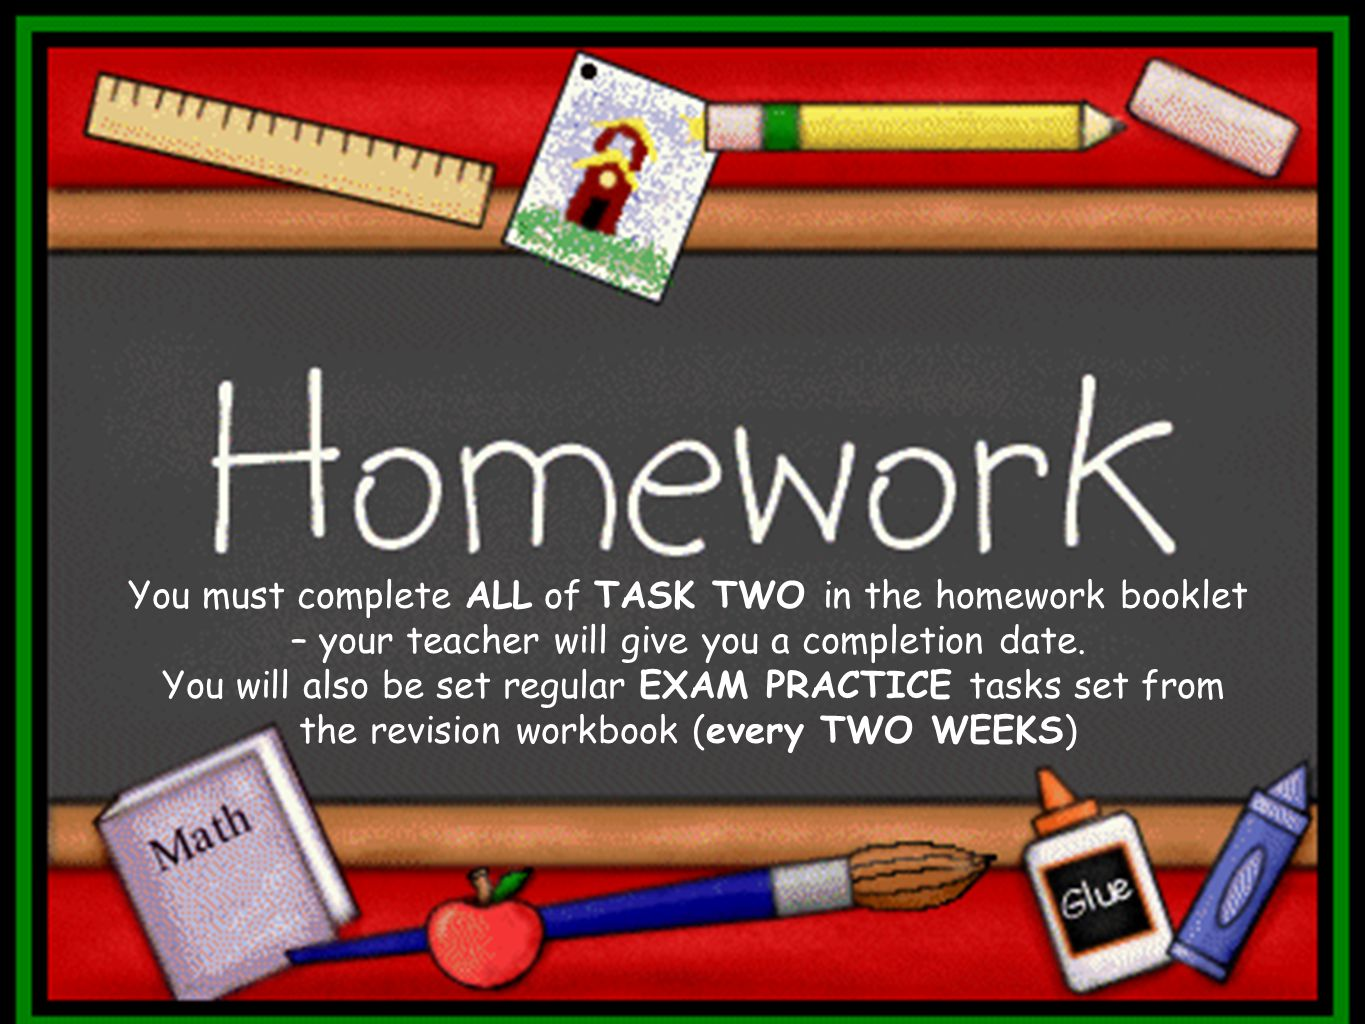 You must complete ALL of TASK TWO in the homework booklet – your teacher will give you a completion date.